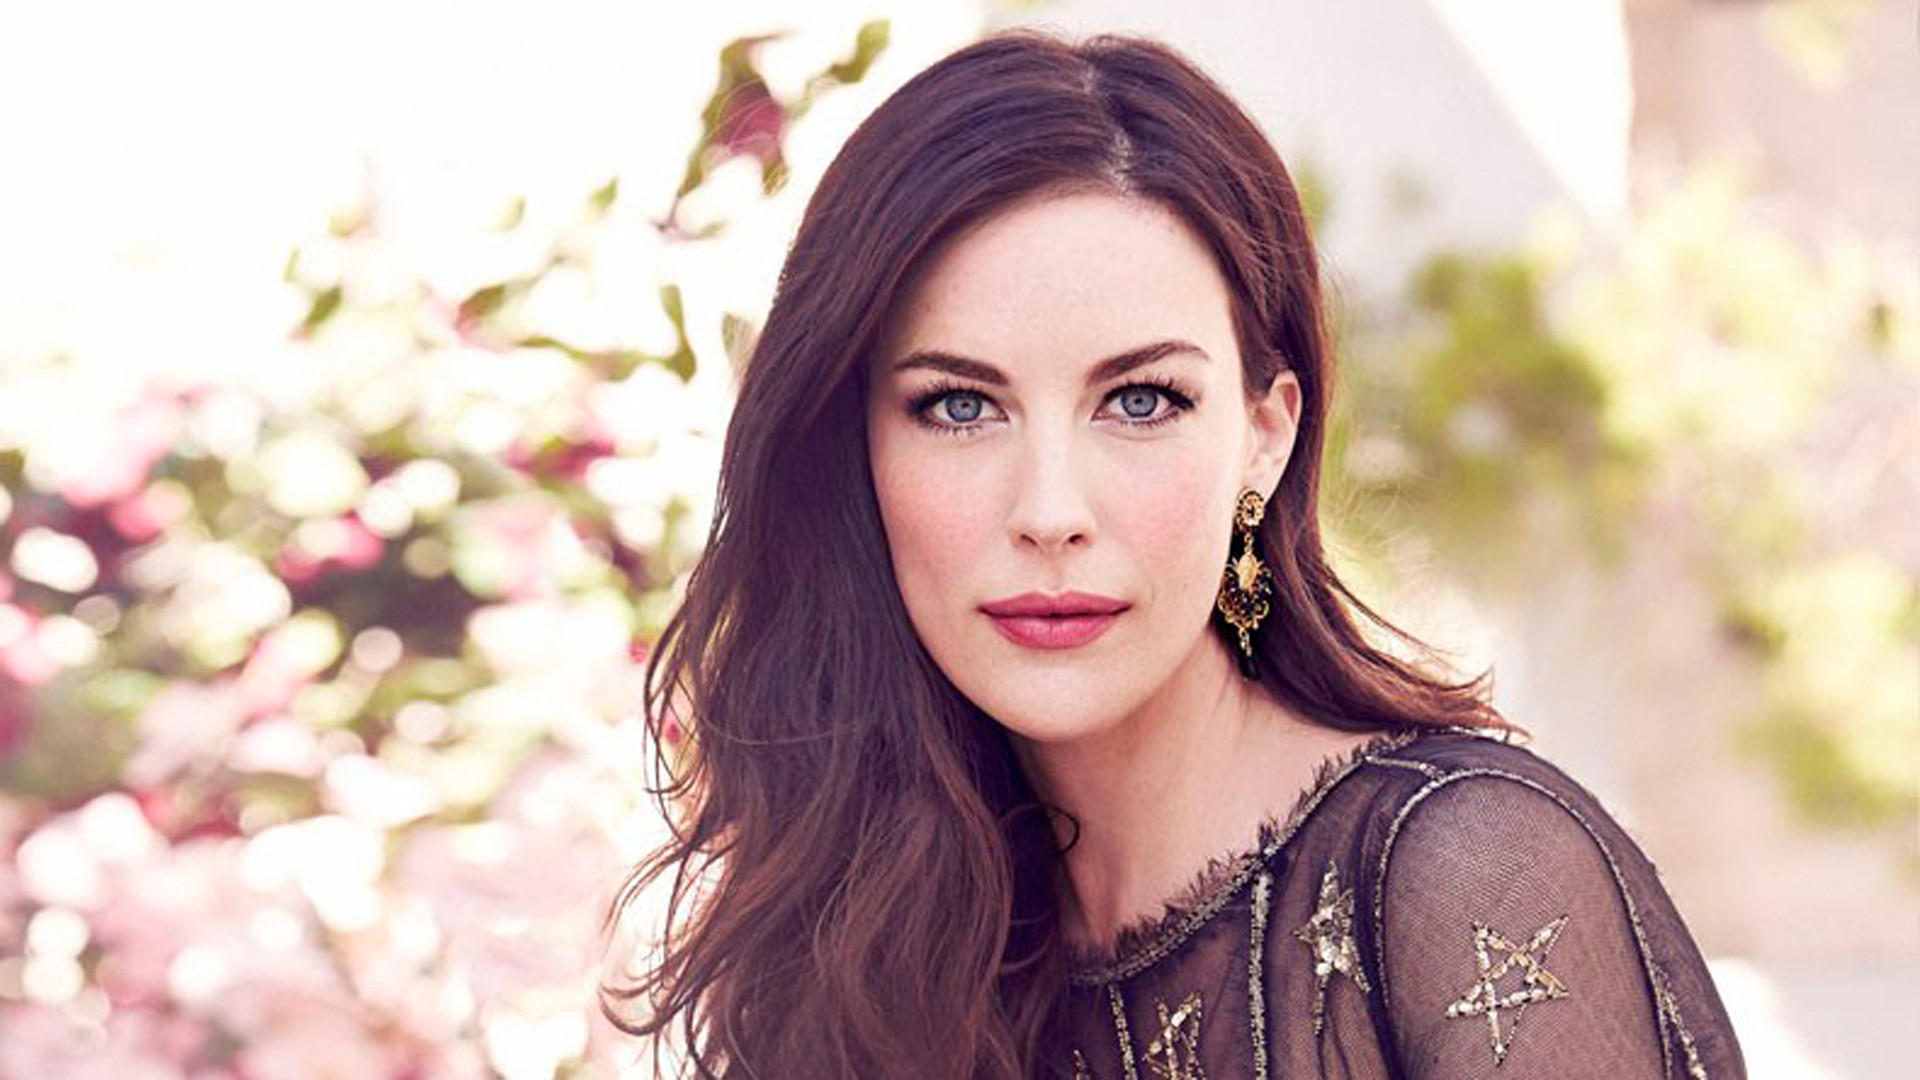 Res: 1920x1080, Liv Tyler Wallpapers 6 - 1920 X 1080